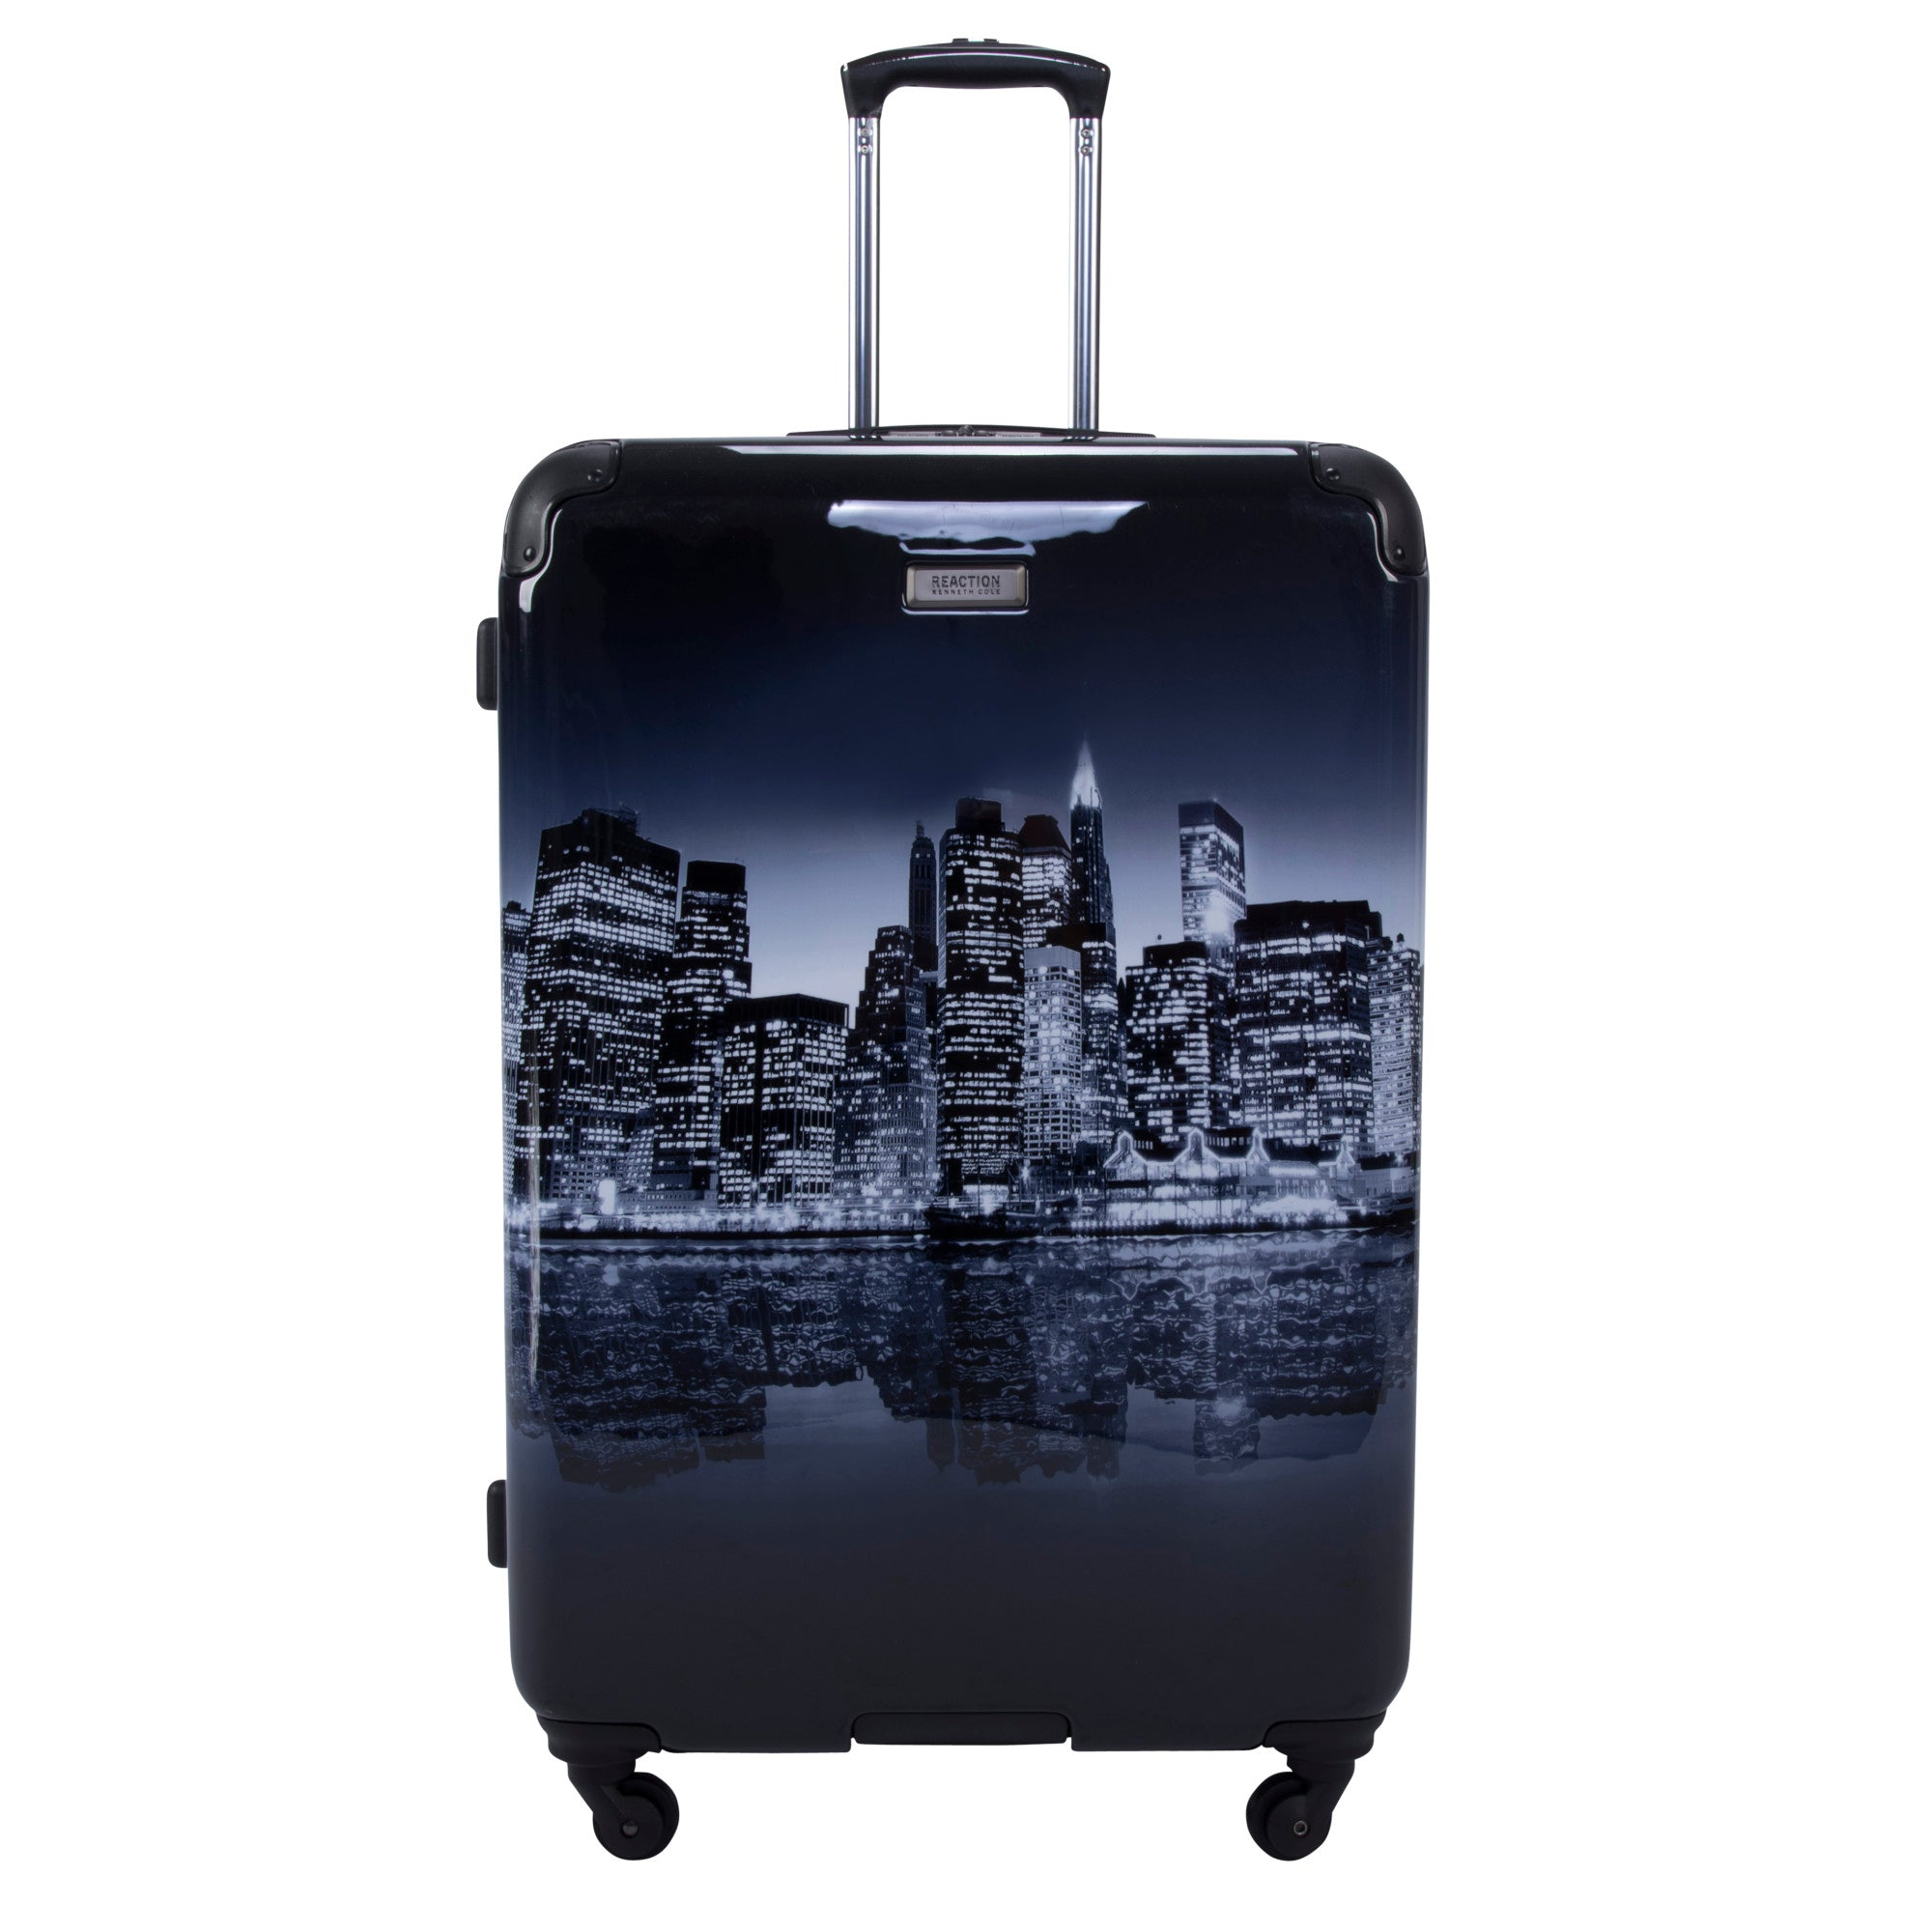 "Kenneth Cole Reaction City Scape 28"" Hardside Luggage - KCR571595502"